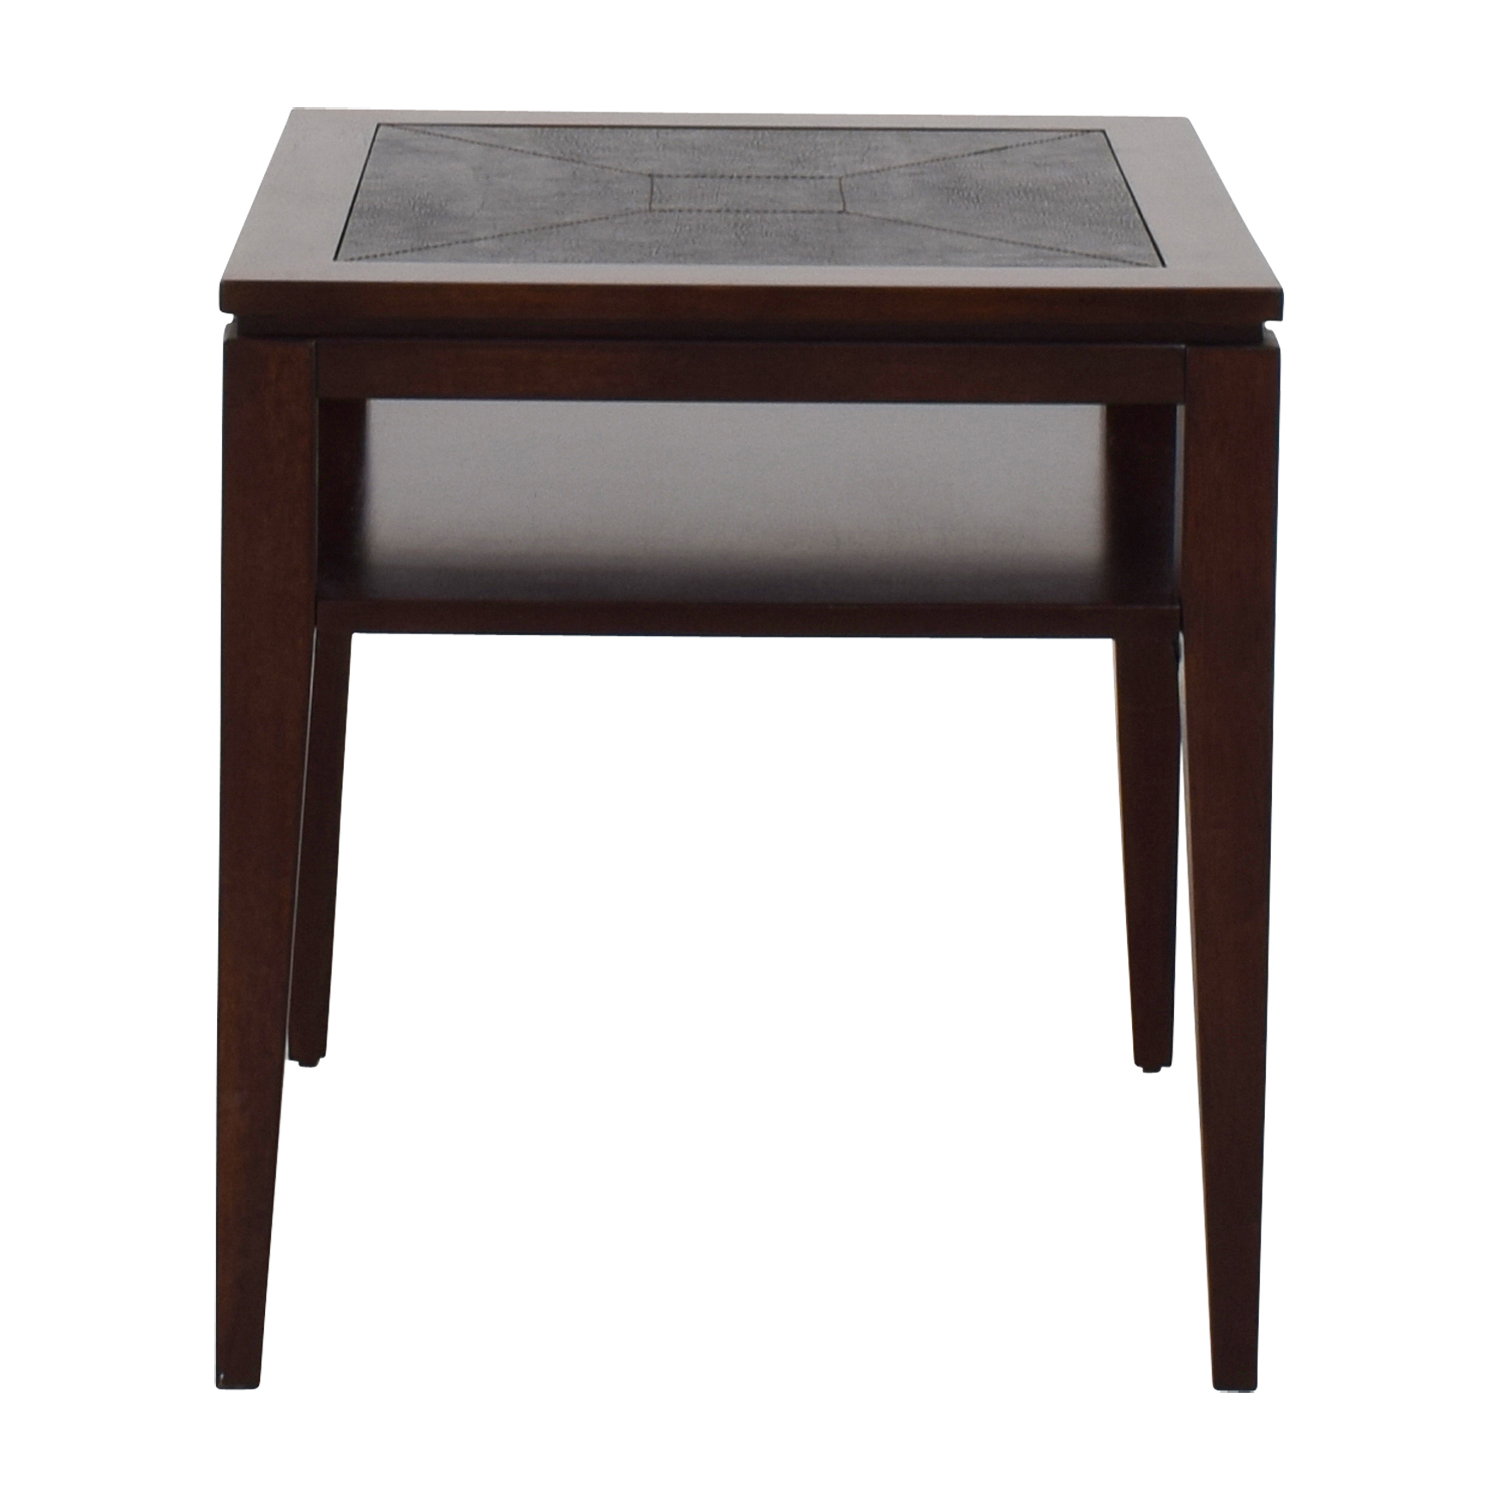 Raymour & Flanigan Raymour & Flanigan End Table price